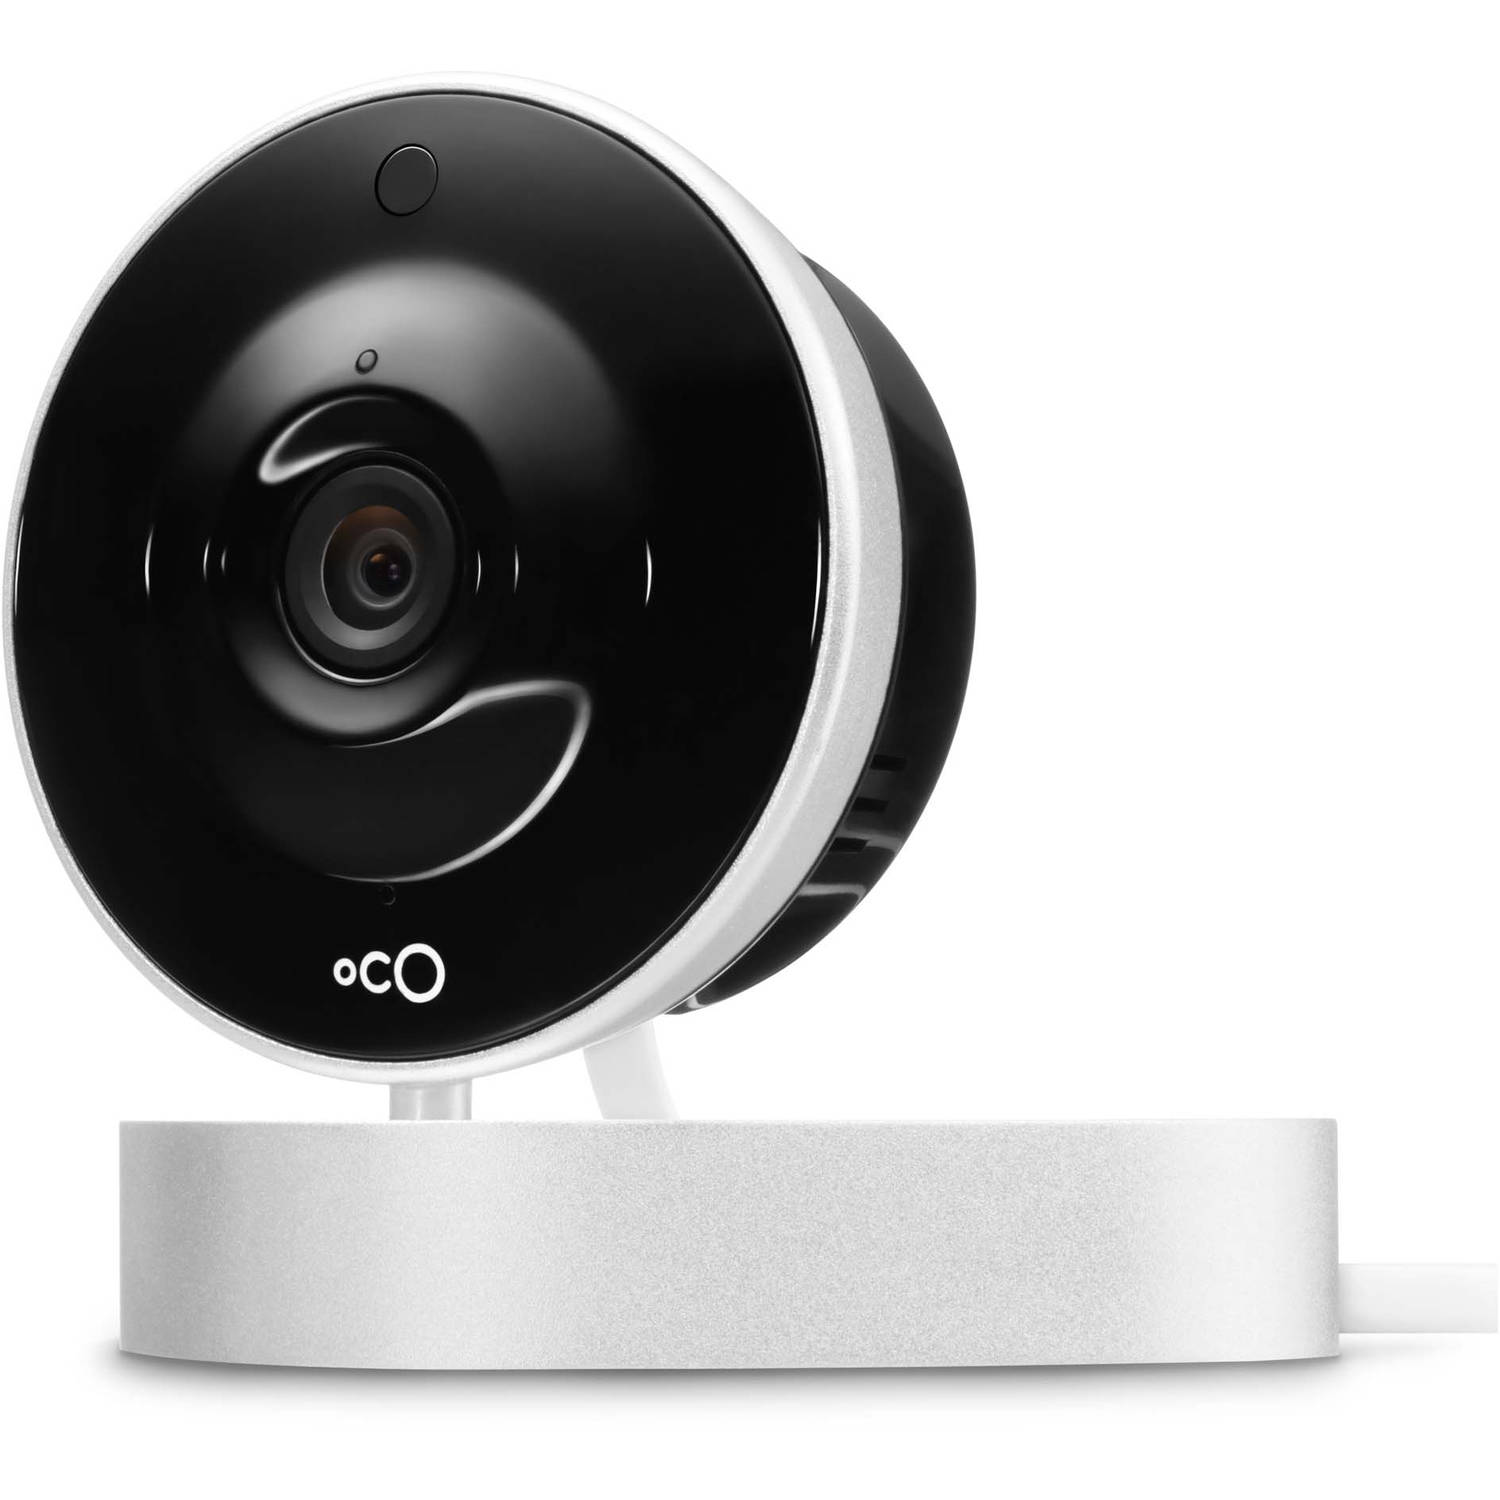 Oco Wireless Surveillance HD Video Monitoring Security Camera 720P Night Vision and 2 Way Sound Motion & Detection - No more monthly fee